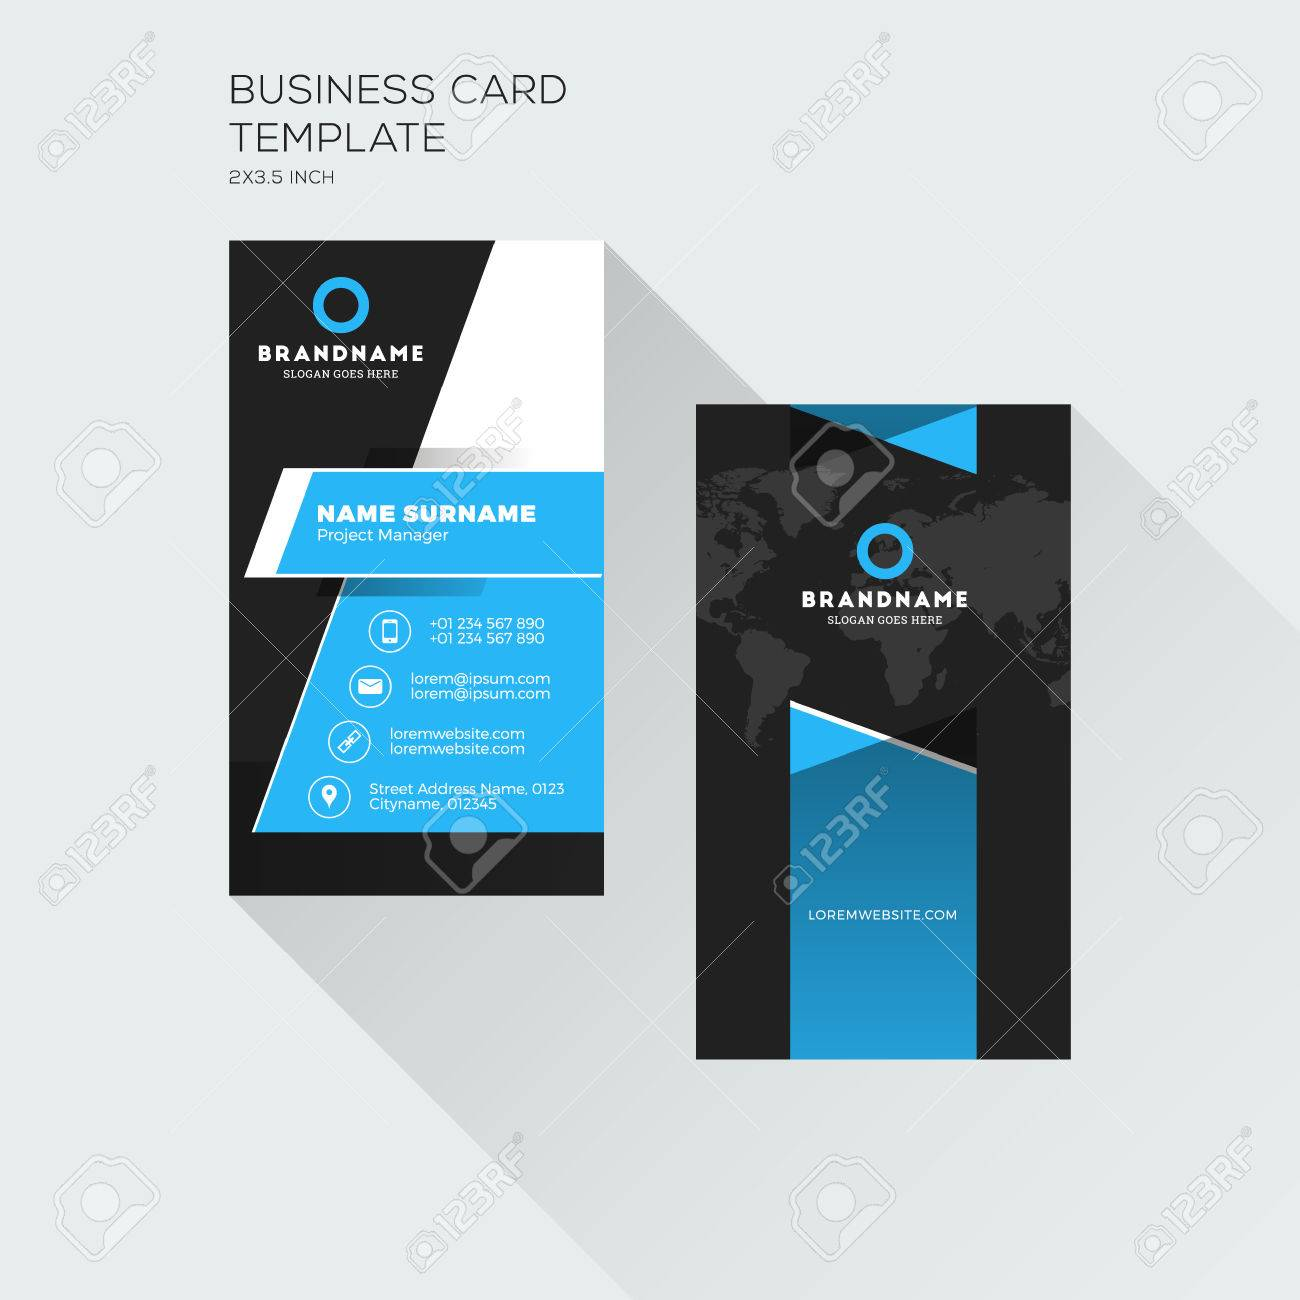 Vertical business card print template personal visiting card vector vertical business card print template personal visiting card black and blue colors clean flat design vector illustration colourmoves